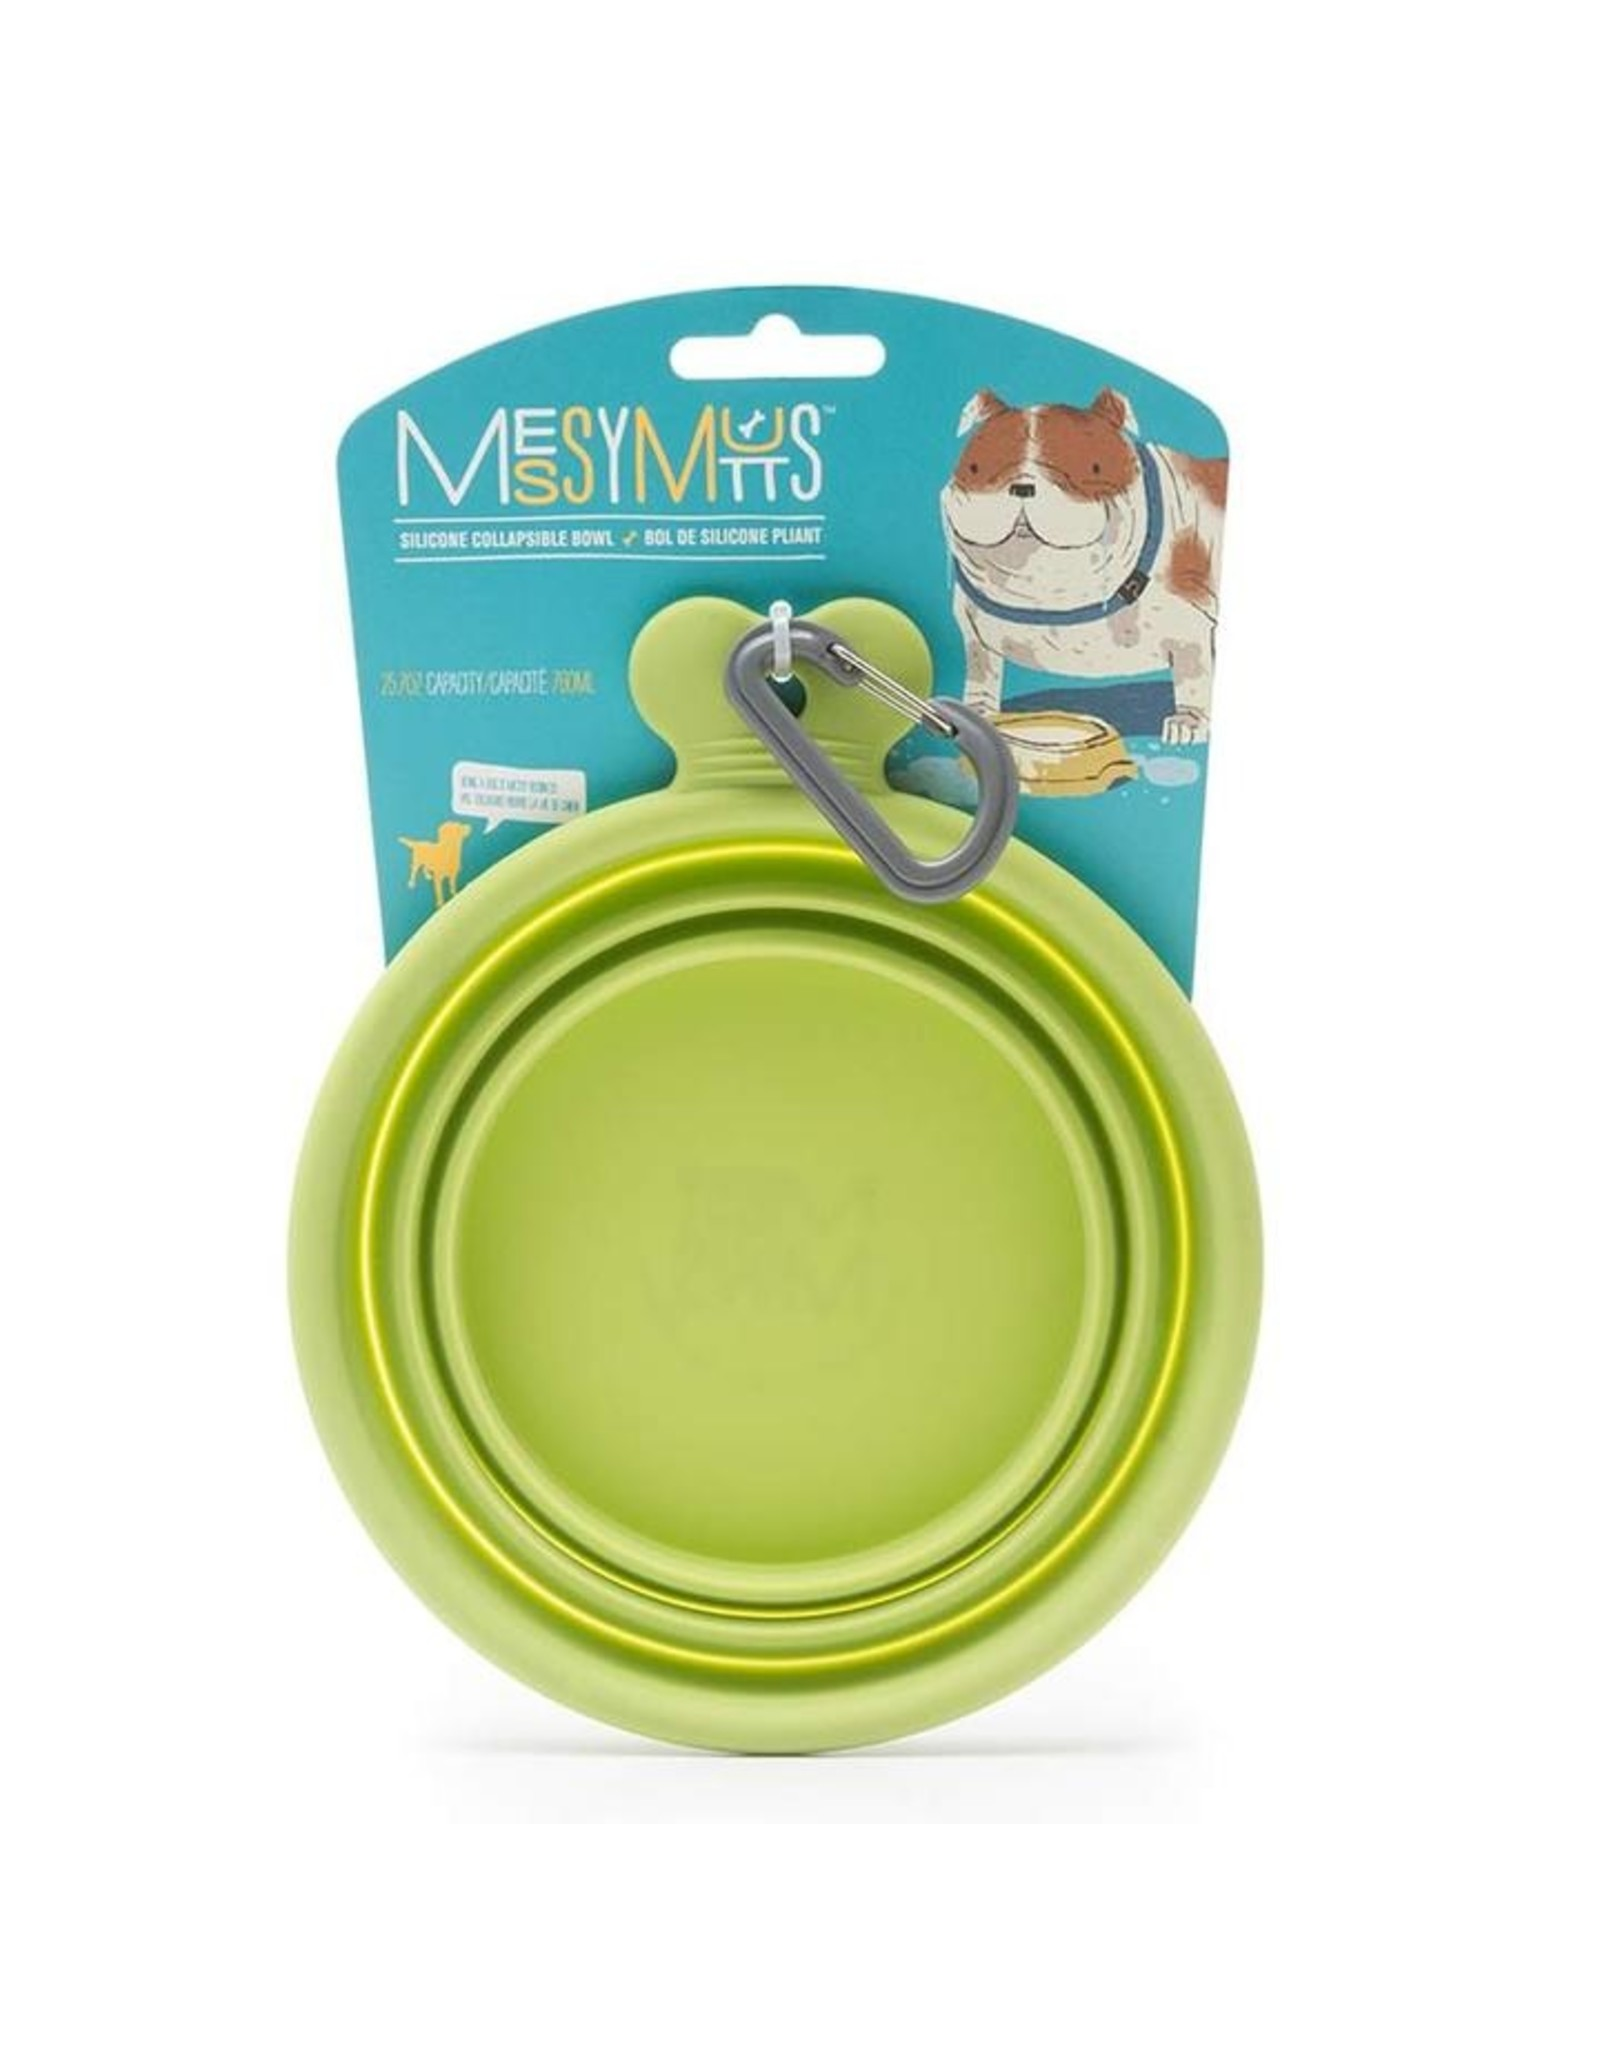 Messy Mutts MESSY MUTTS SILICONE COLLAPSIBLE BOWL